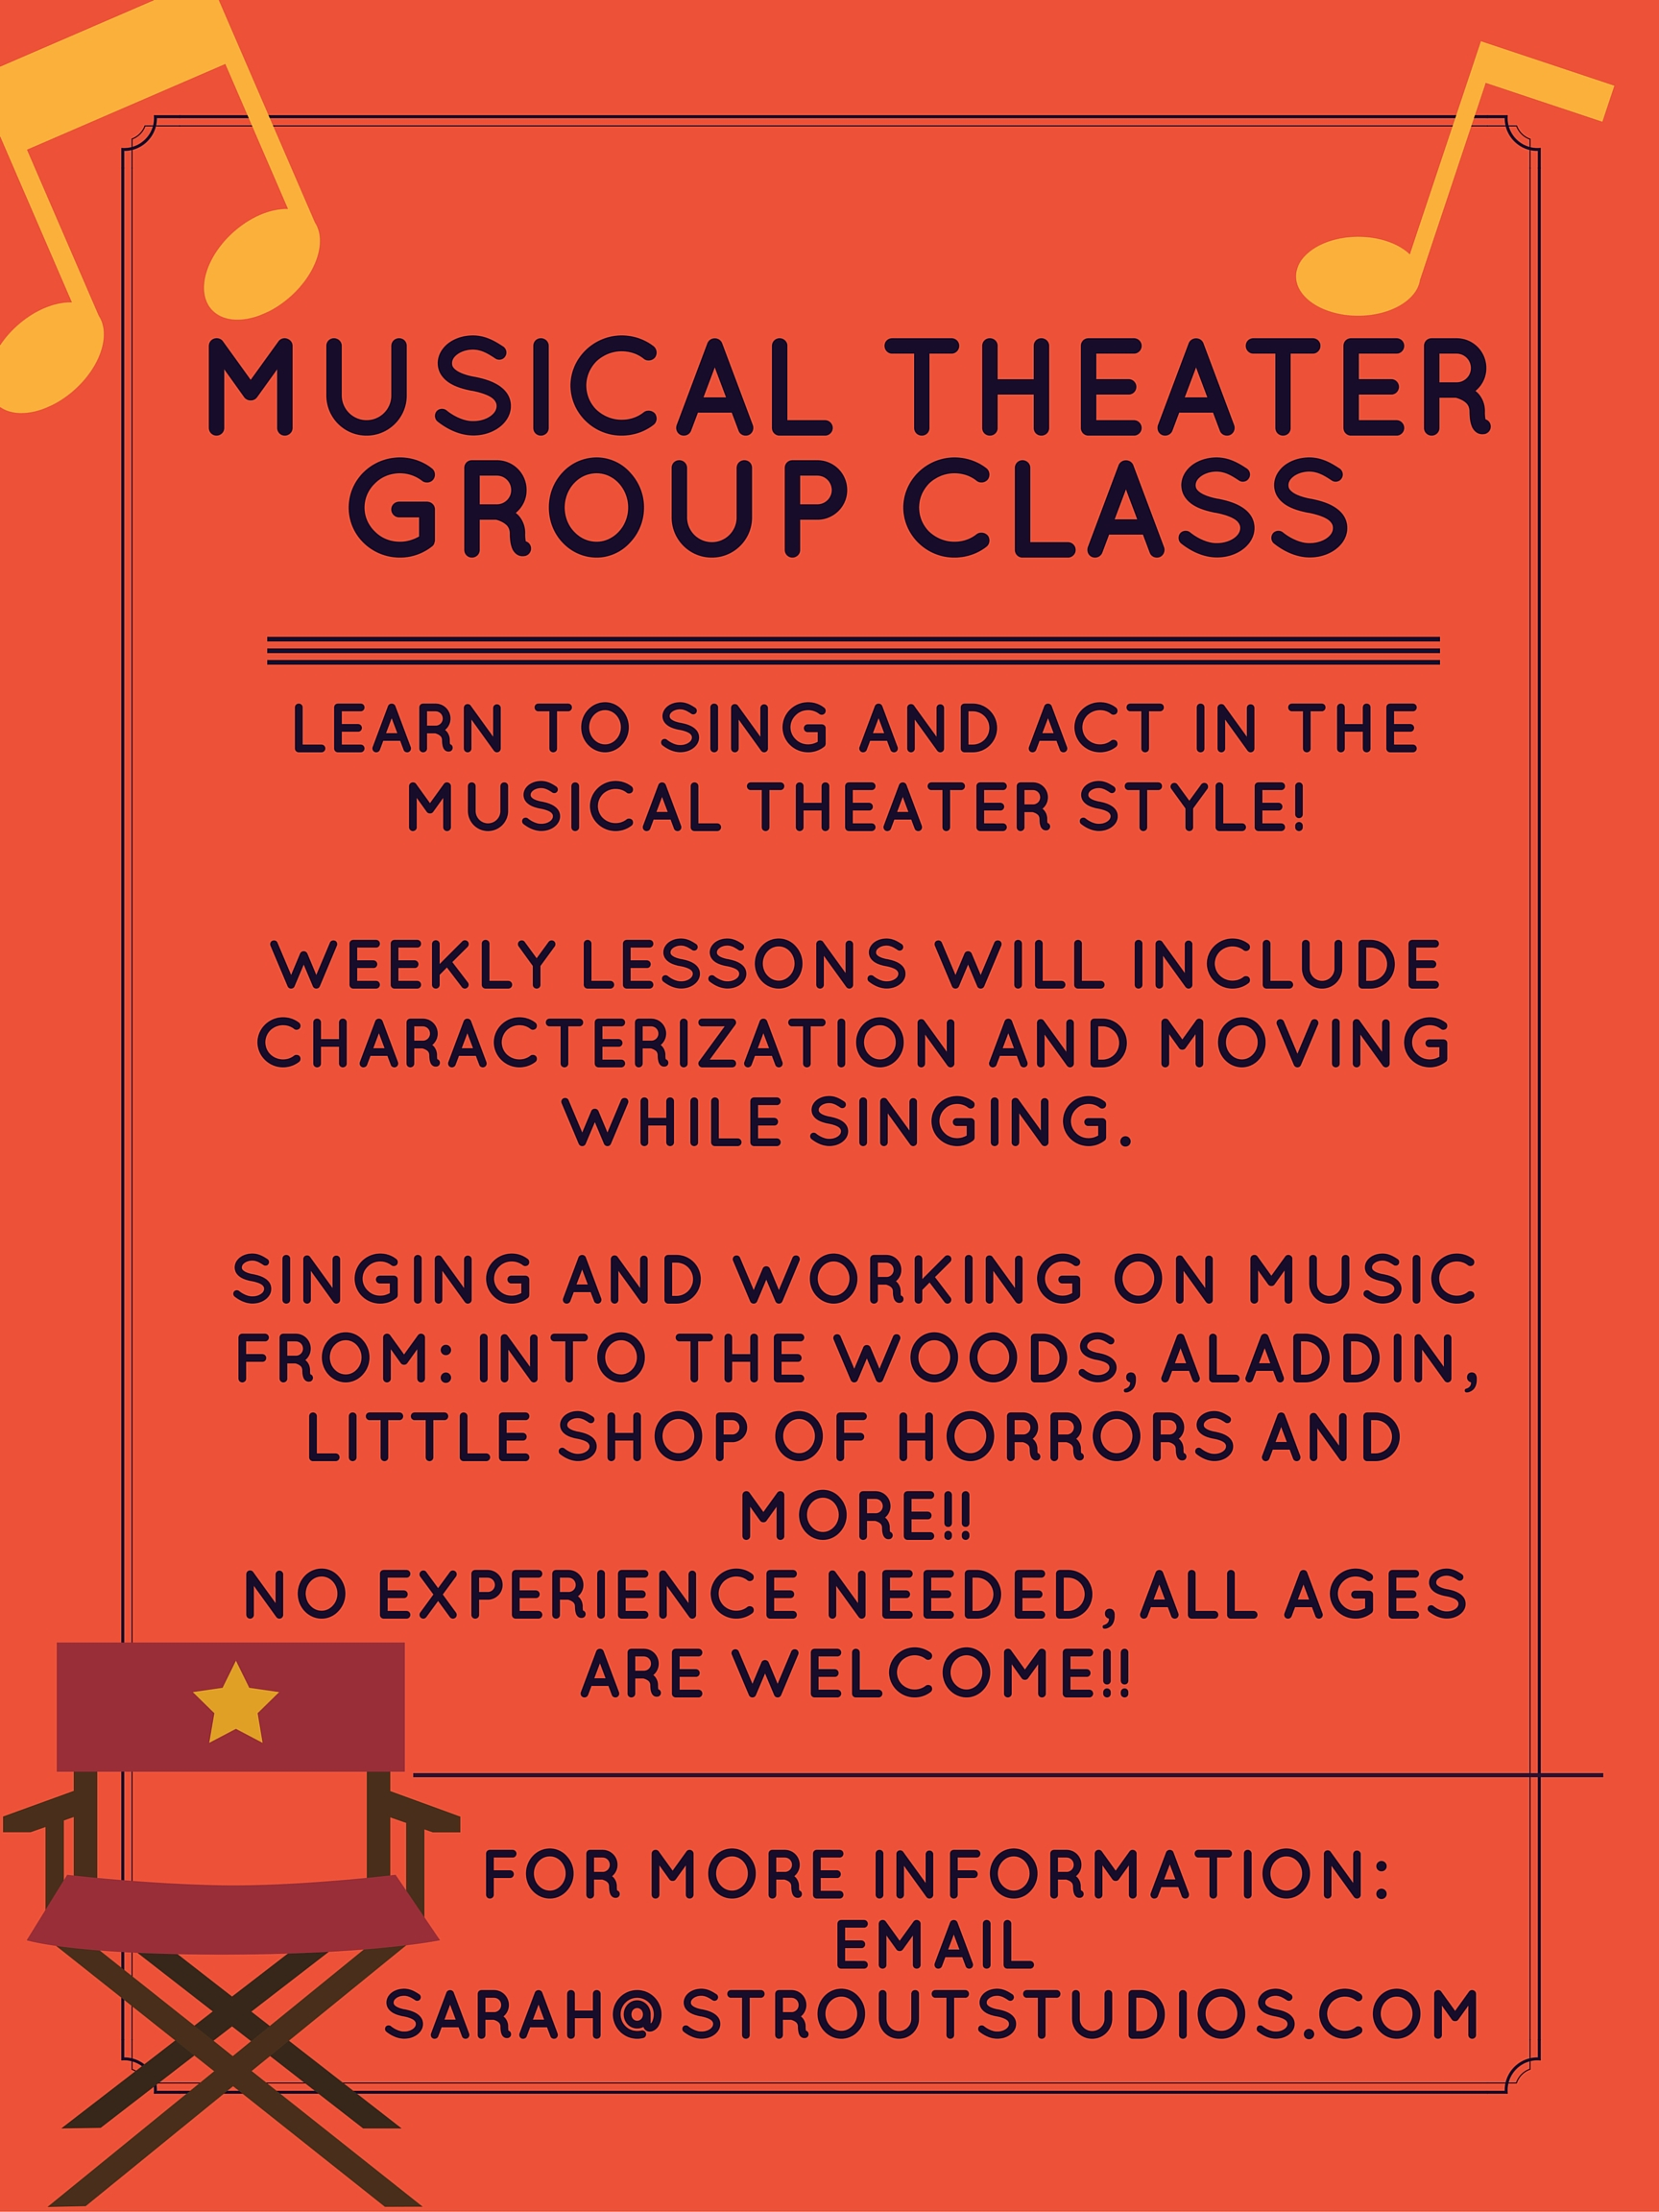 MUSICAL THEATER GROUP CLASS 0I